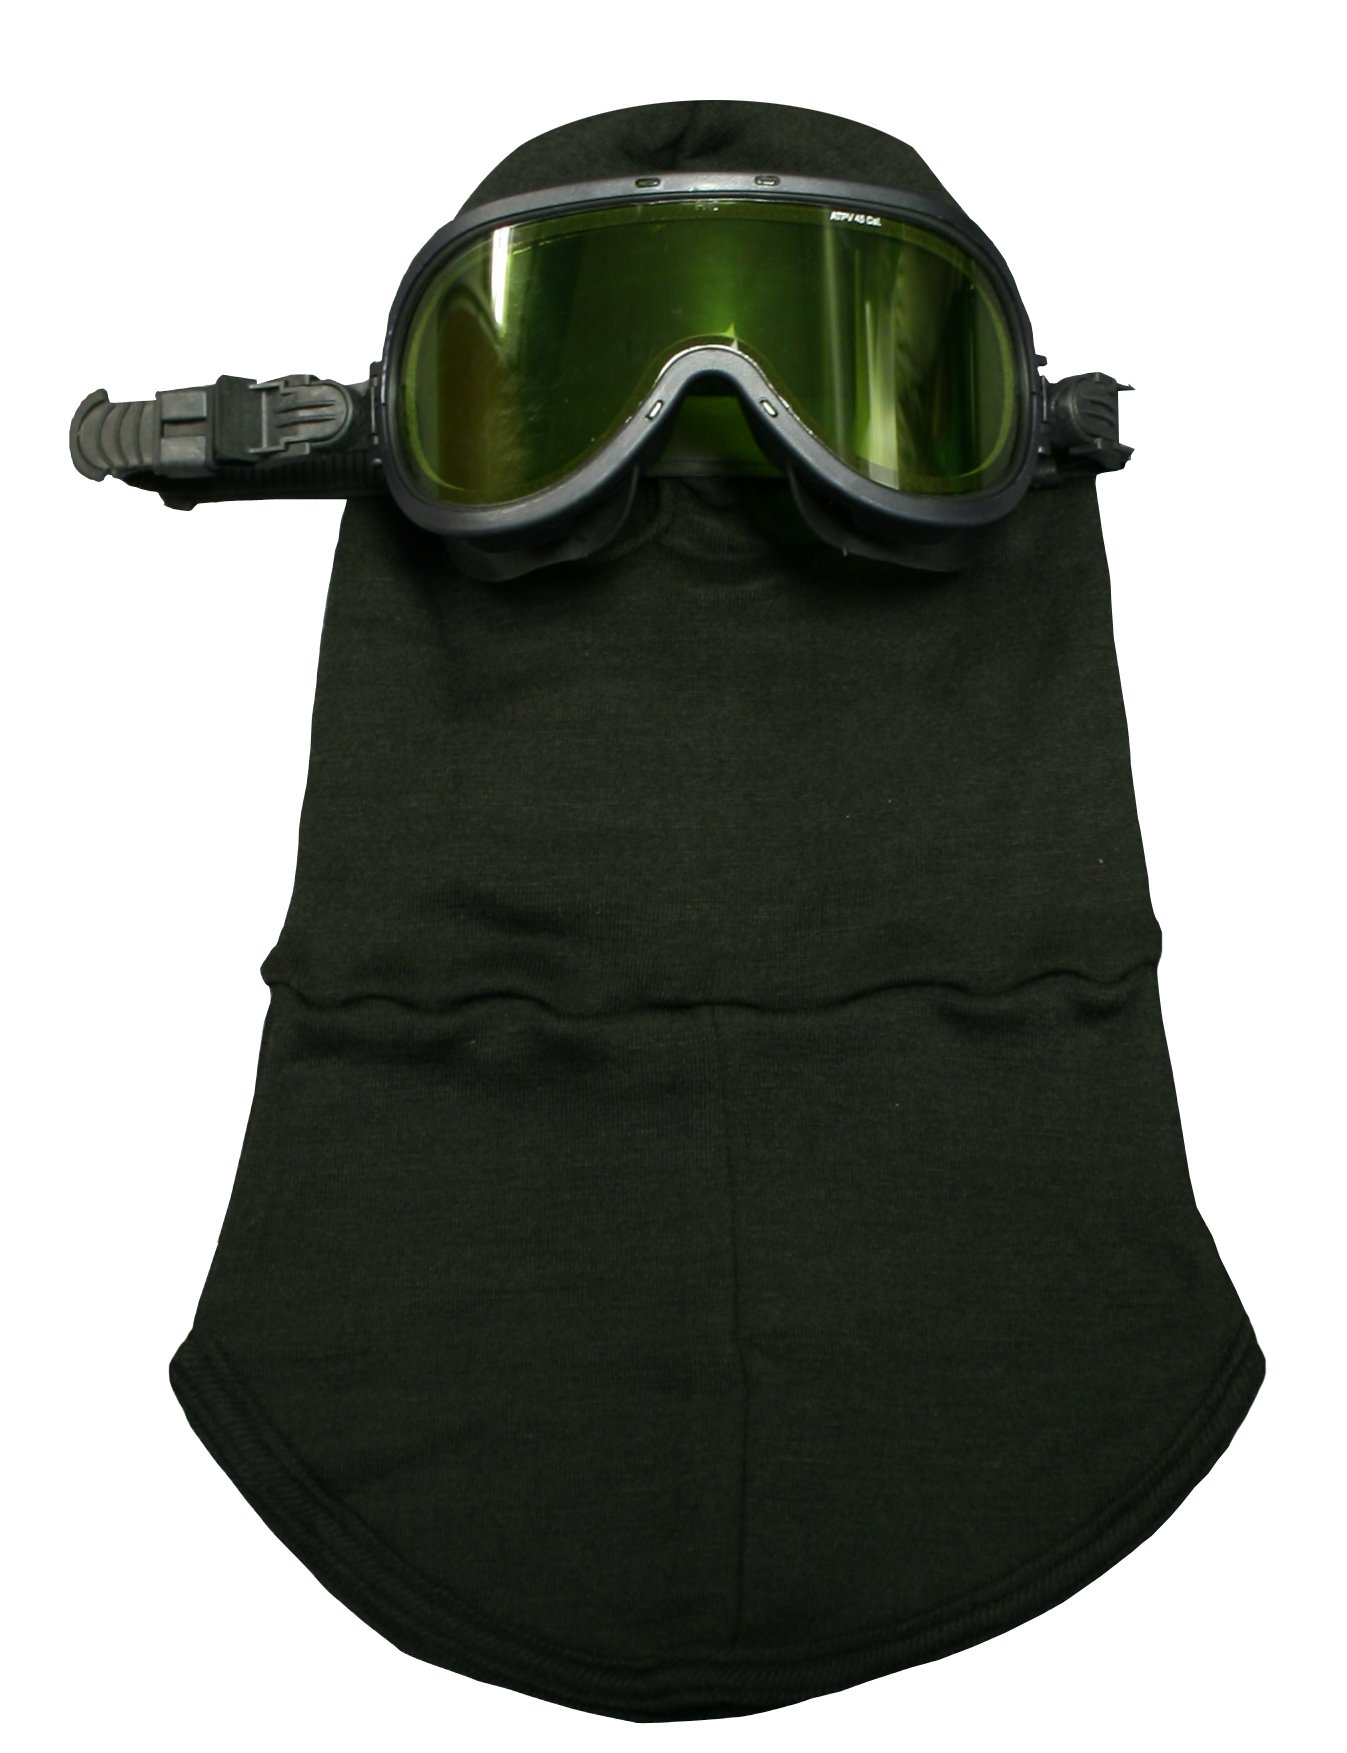 National Safety Apparel KITHP45 ArcGuard Arc Goggle and Balaclava Hood Combination, 45 Calorie, One Size